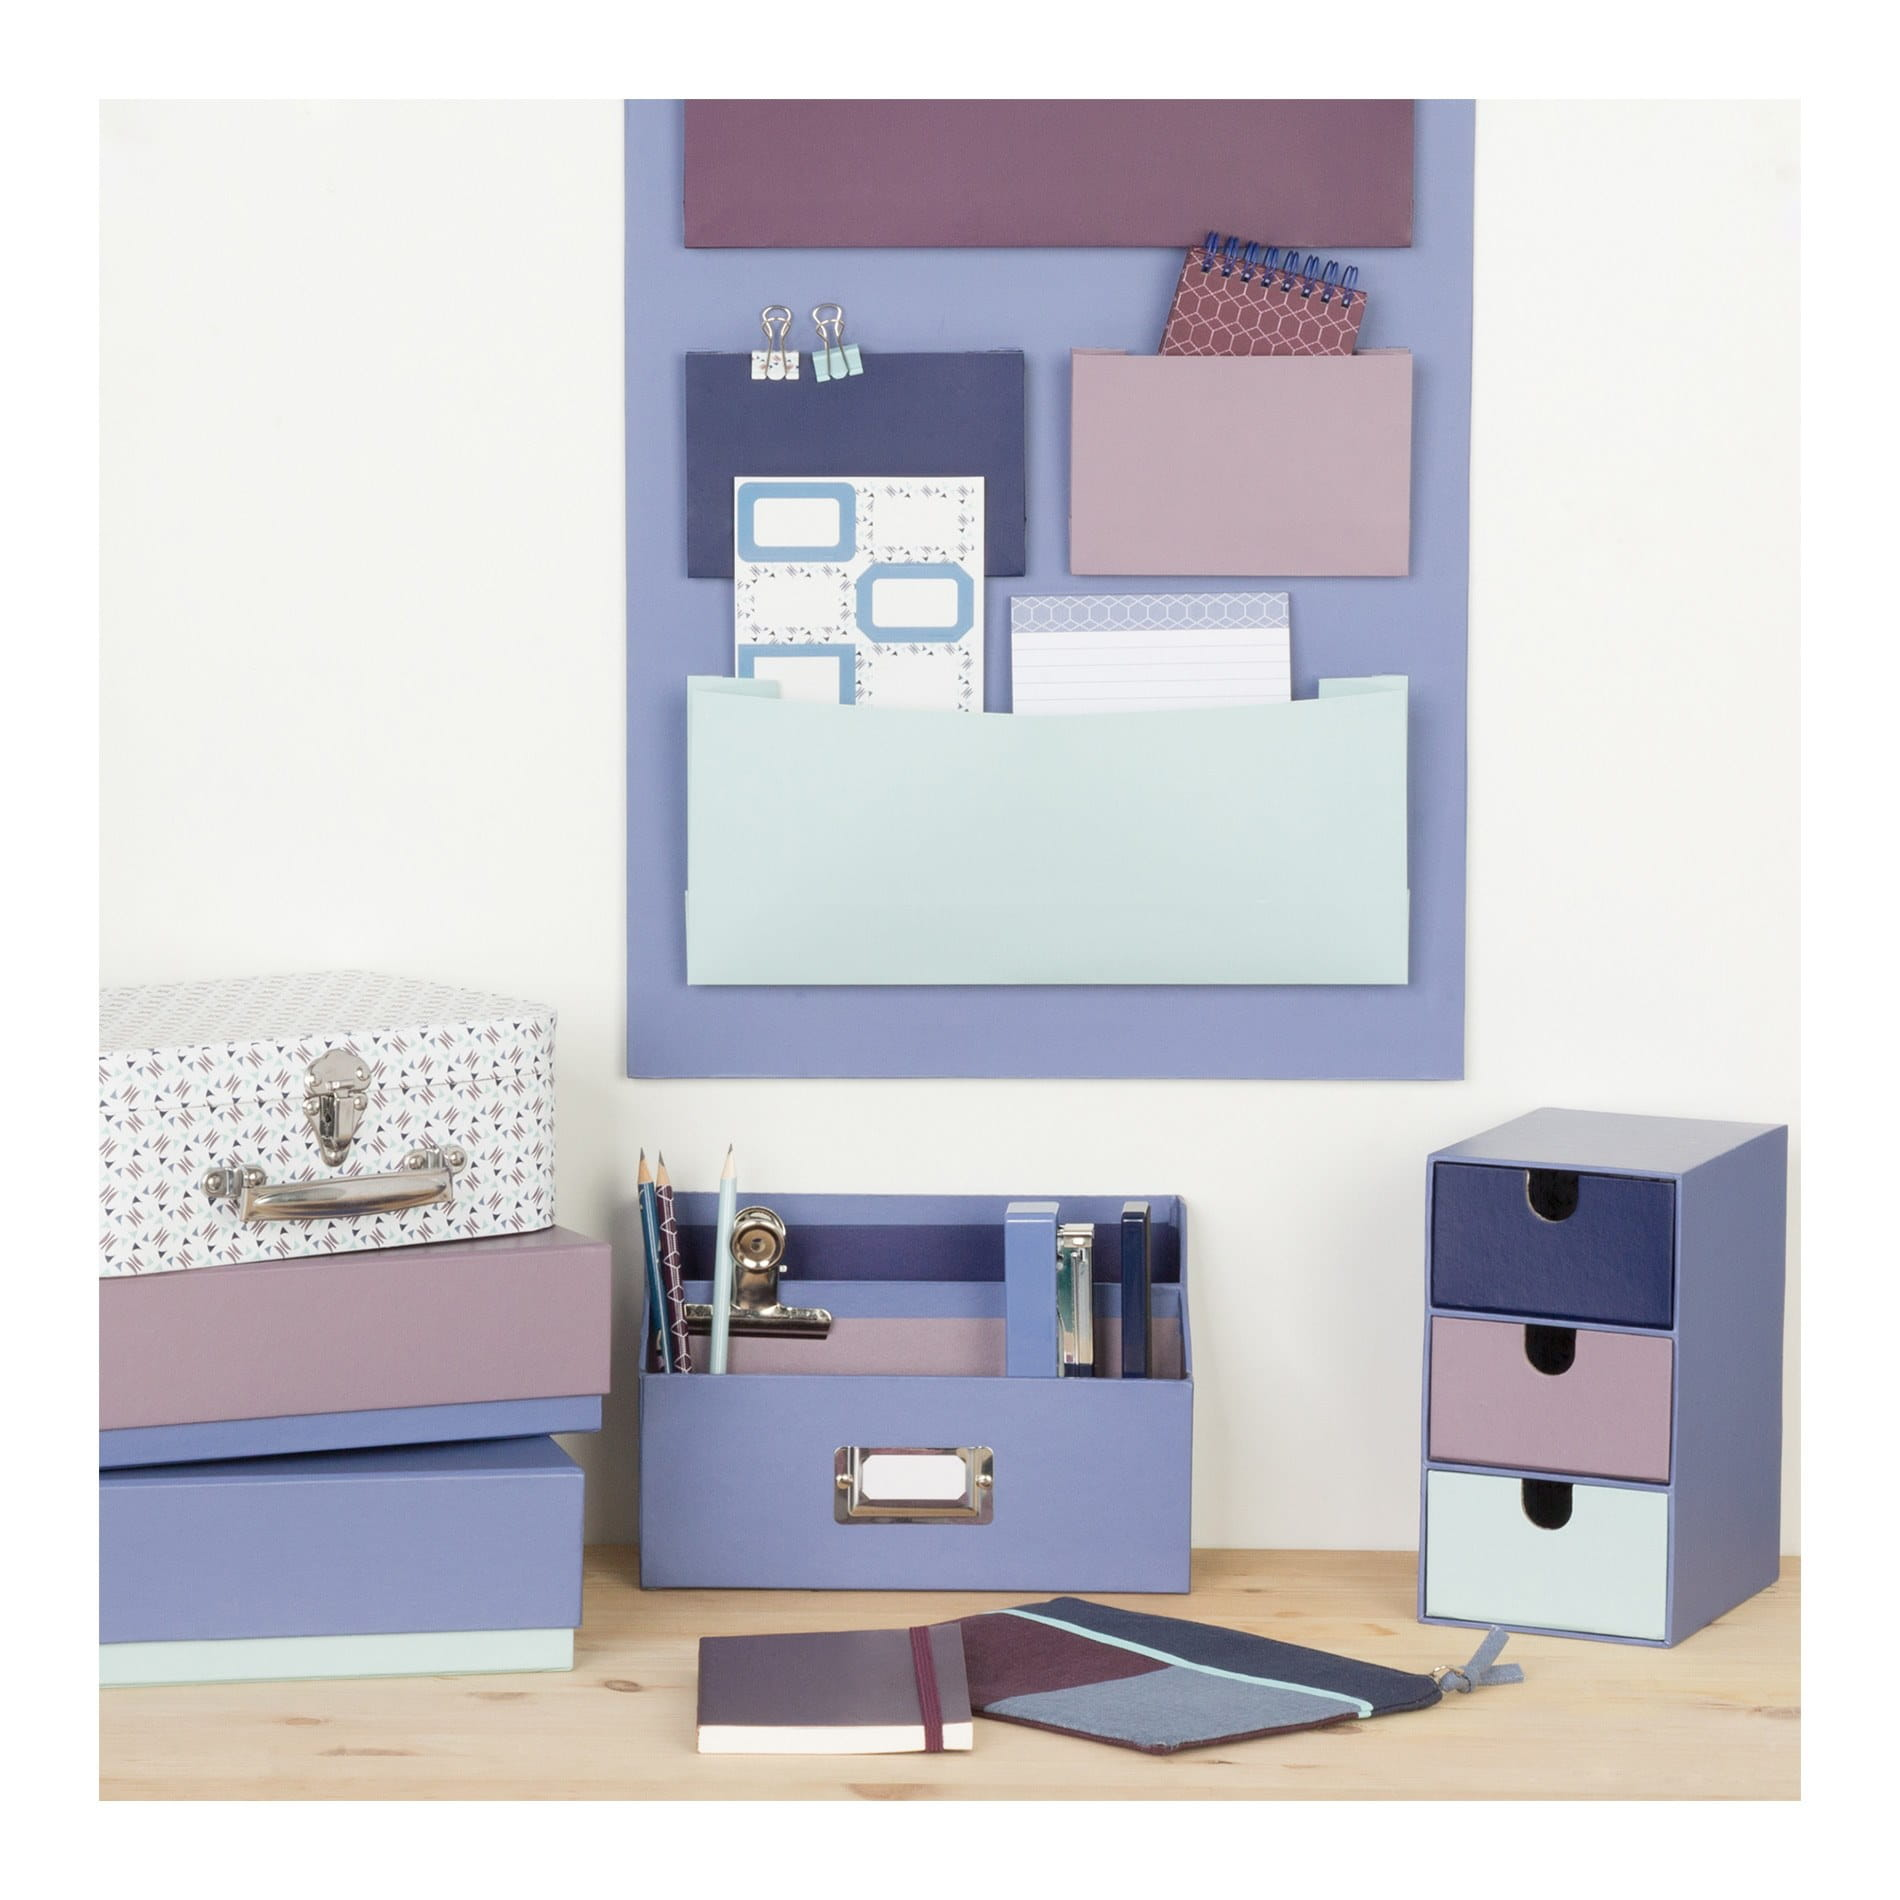 anestudio septembre 2015 rangement mural bureau. Black Bedroom Furniture Sets. Home Design Ideas